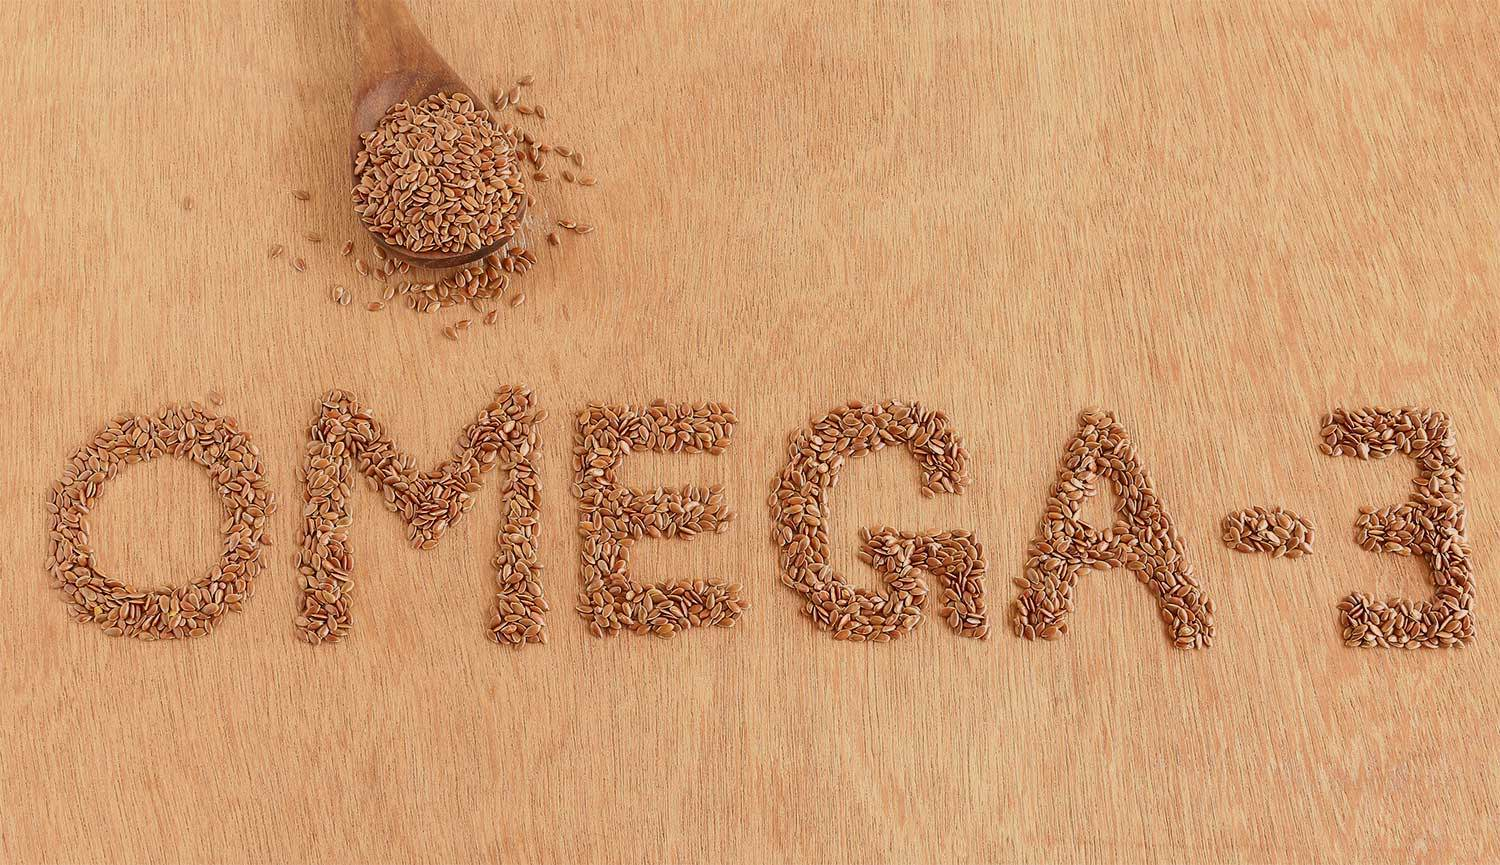 Flax Seeds are an excellent source of Omega 3 Fatty Acids